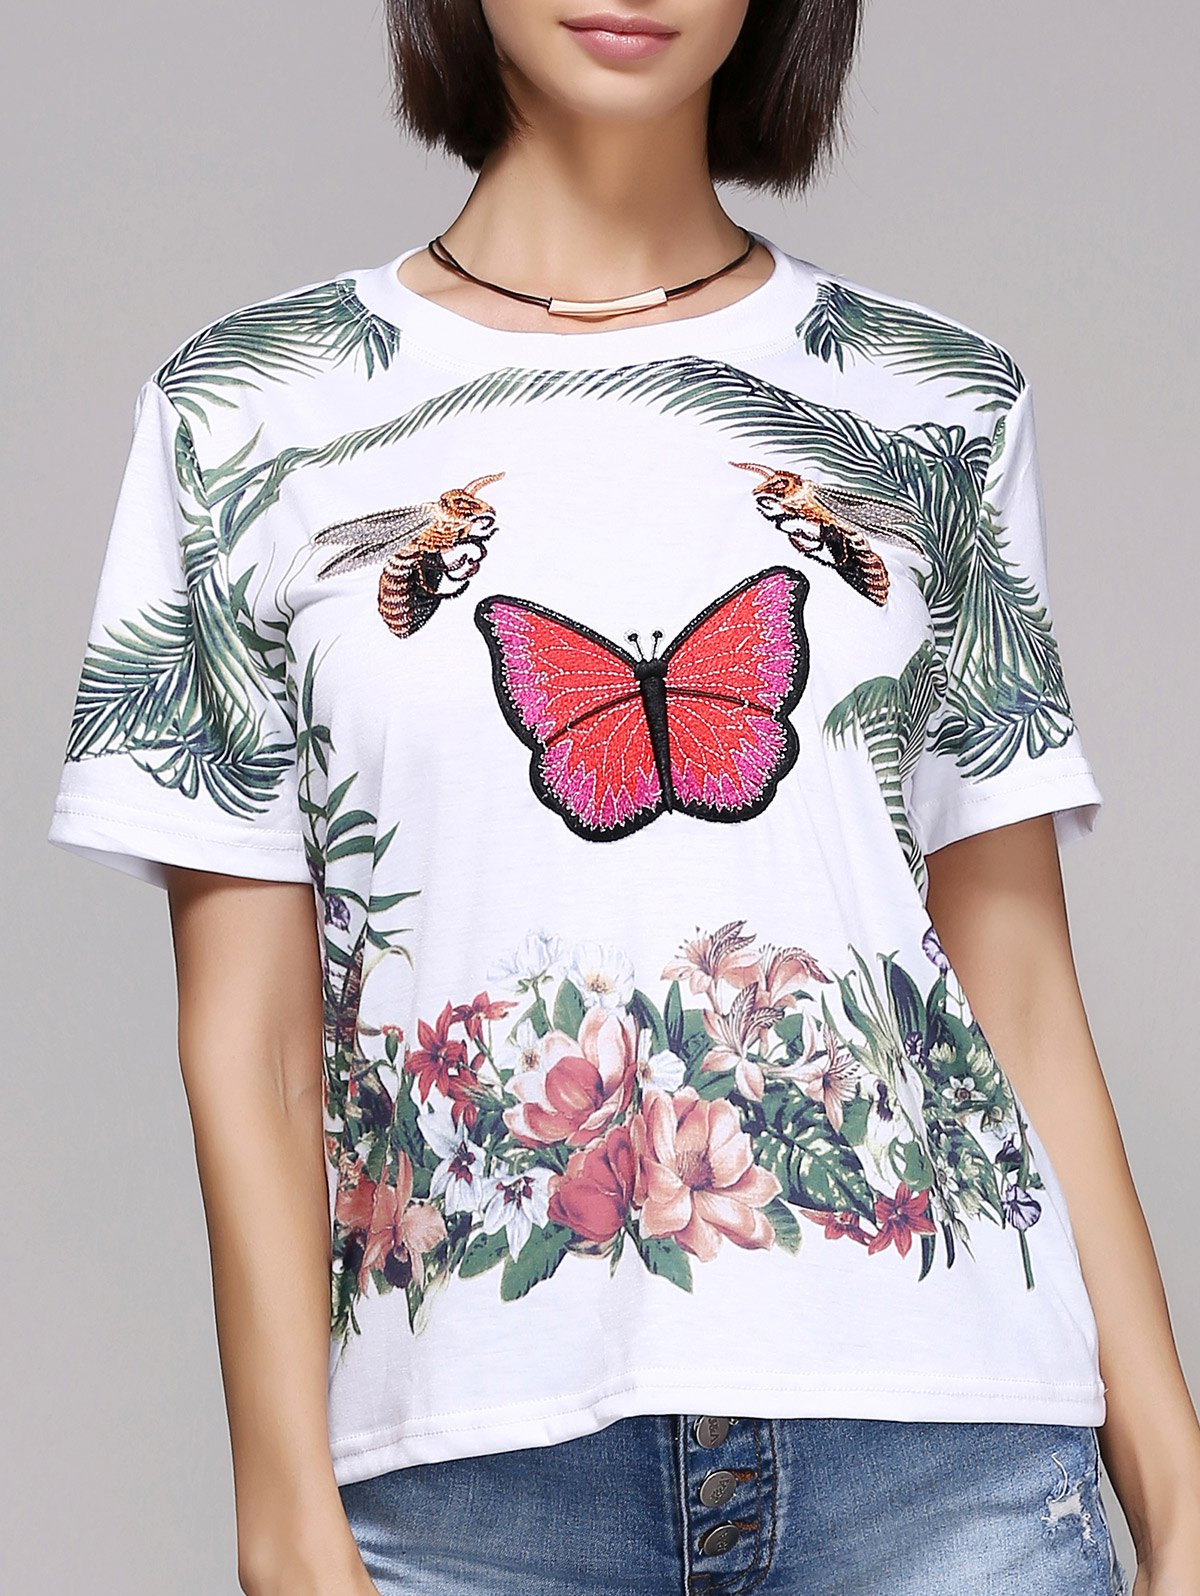 Stylish Butterfly Print Short Sleeve Round Neck T-Shirt For Women new original kyocera 302k994980 motor pm regist for ta4500i 5500i 4501i 5501i 6501i 8001i